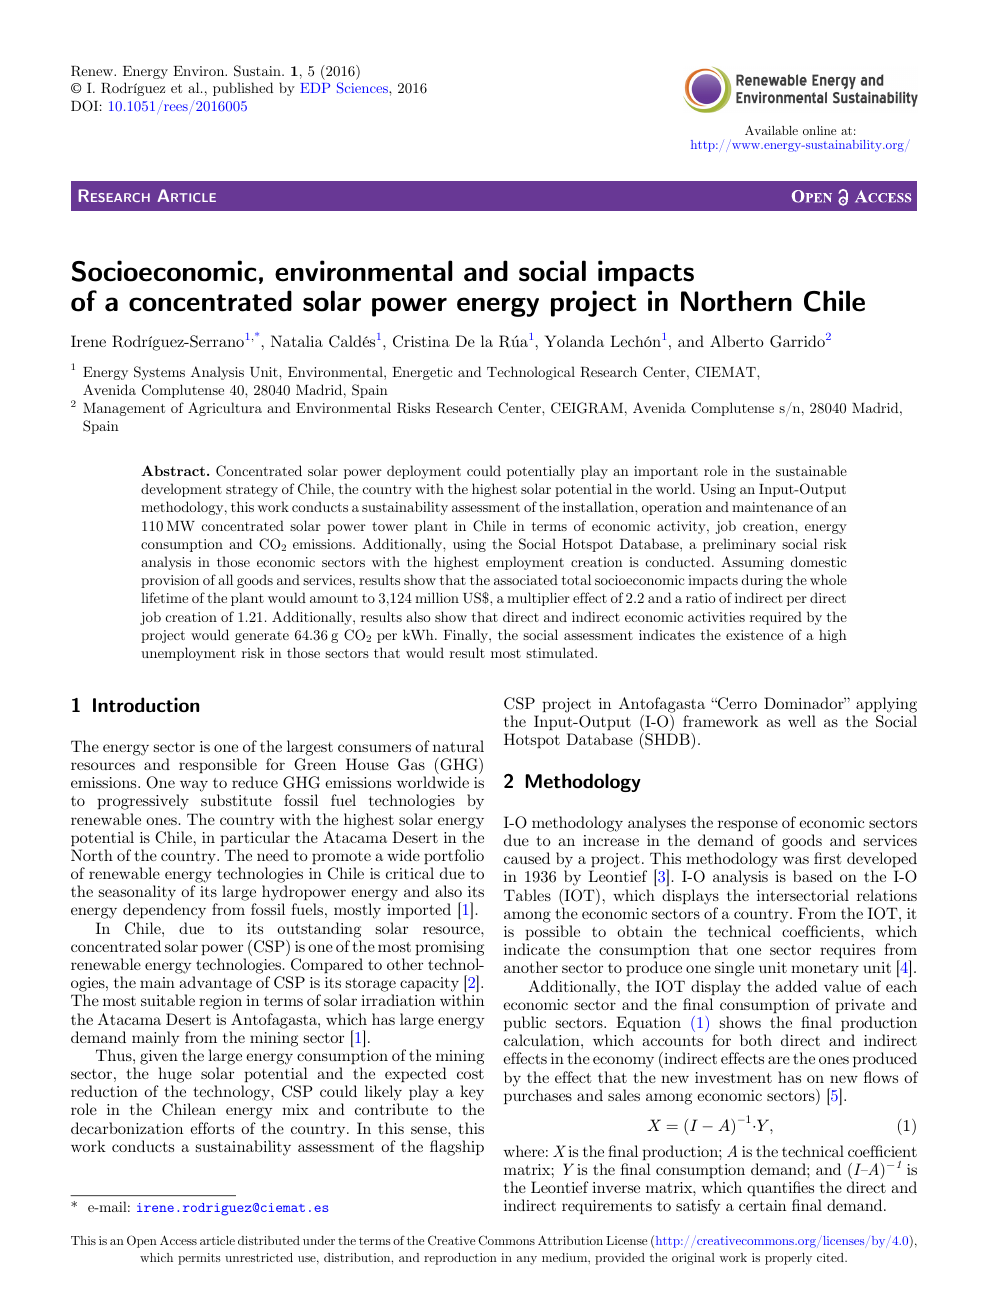 Socioeconomic, environmental and social impacts of a